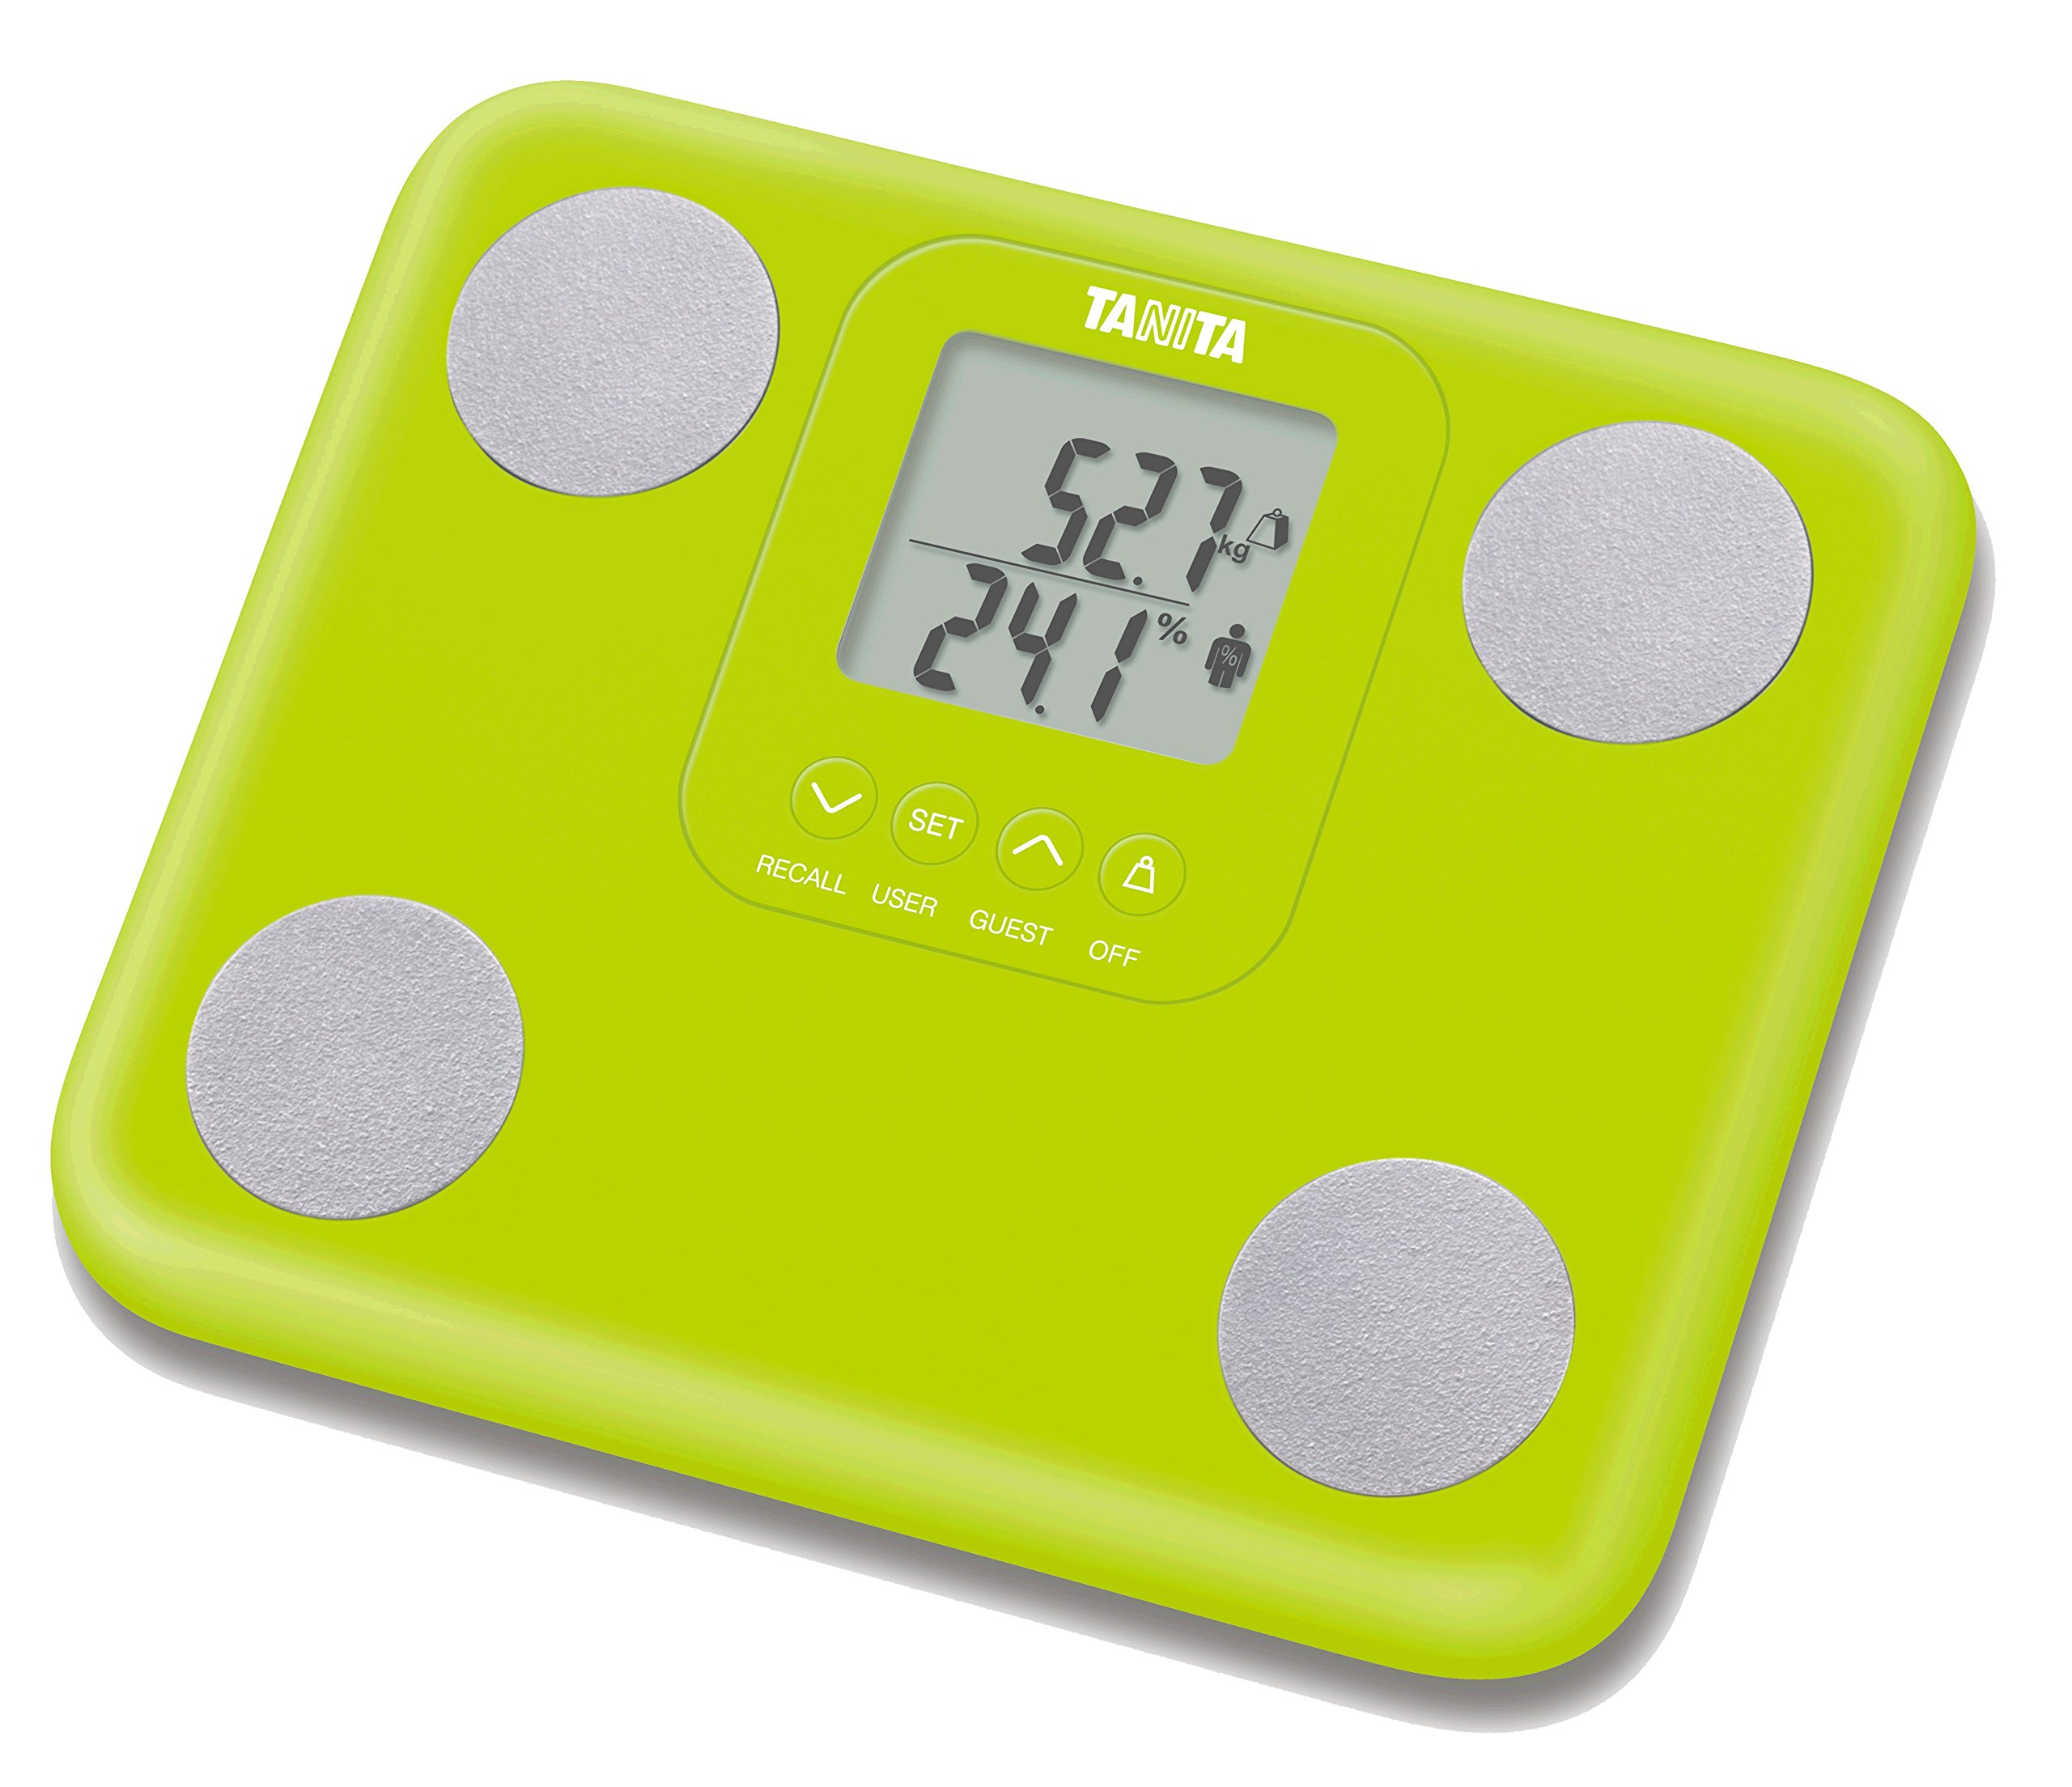 Tanita- Bc730/green Innerscan Body Composition Monitor - Green by TANITA